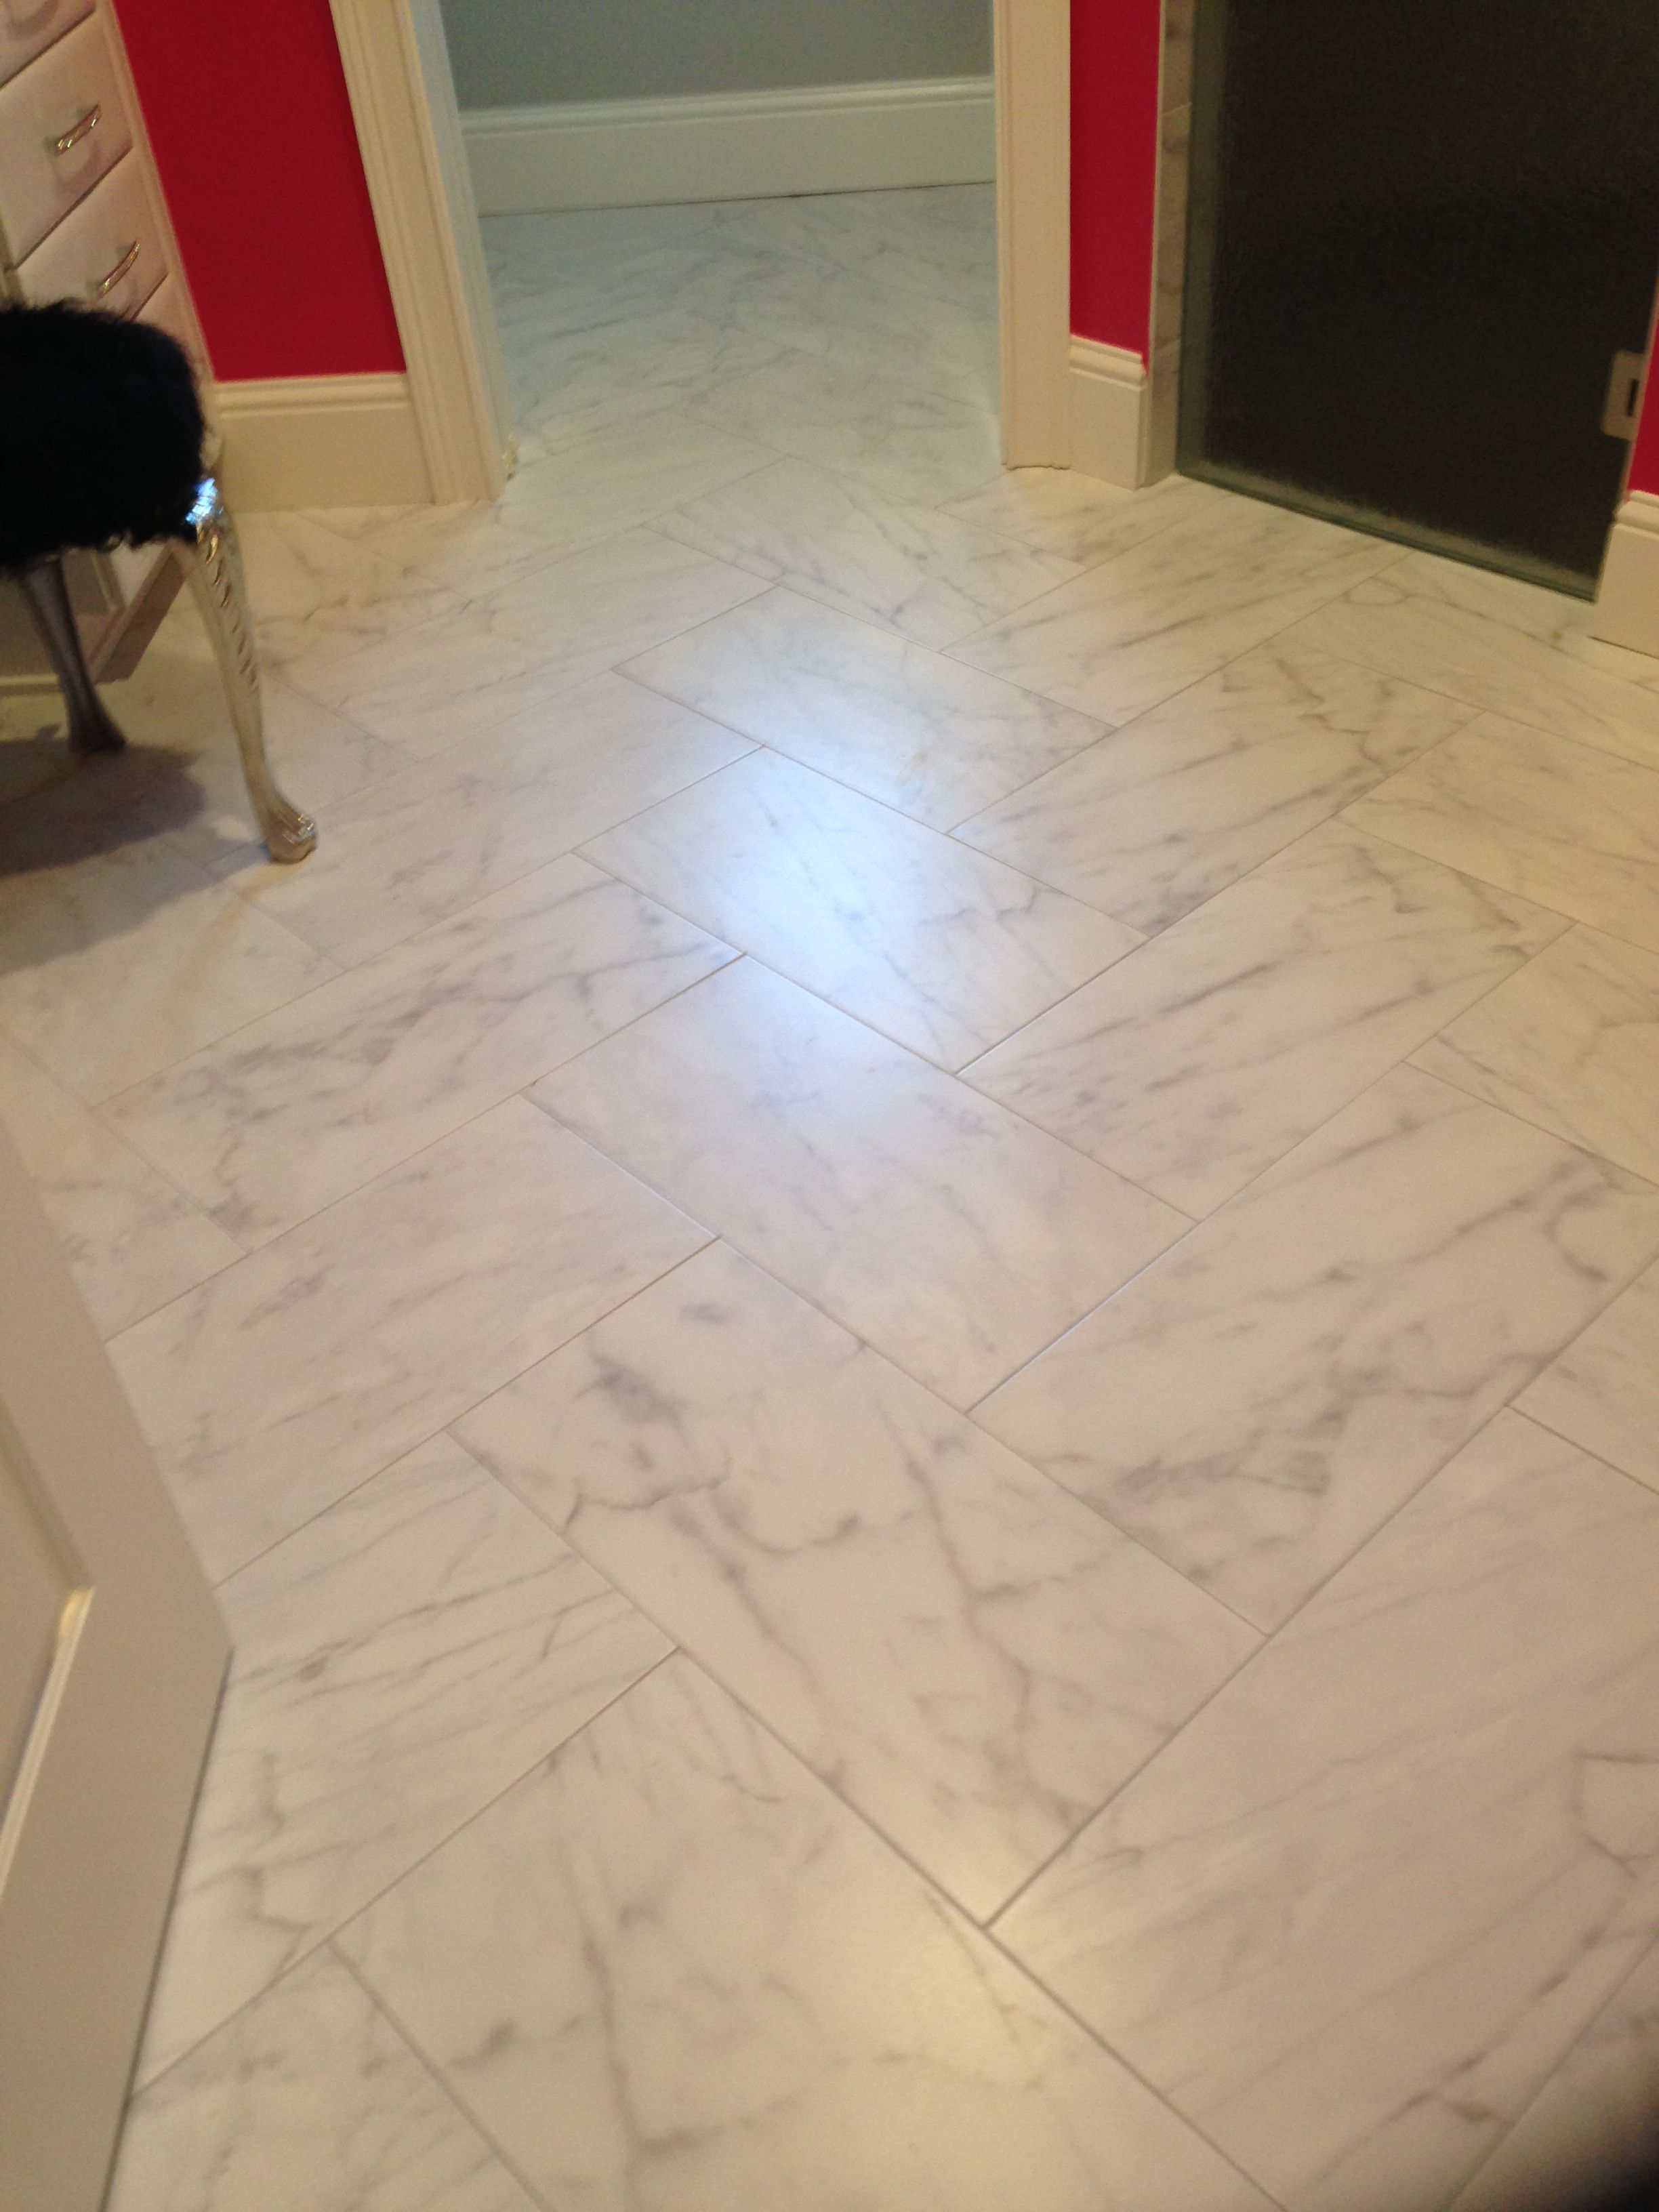 12 X 24 Carrara Look Porcelain Tile In Herringbone Pattern Tile